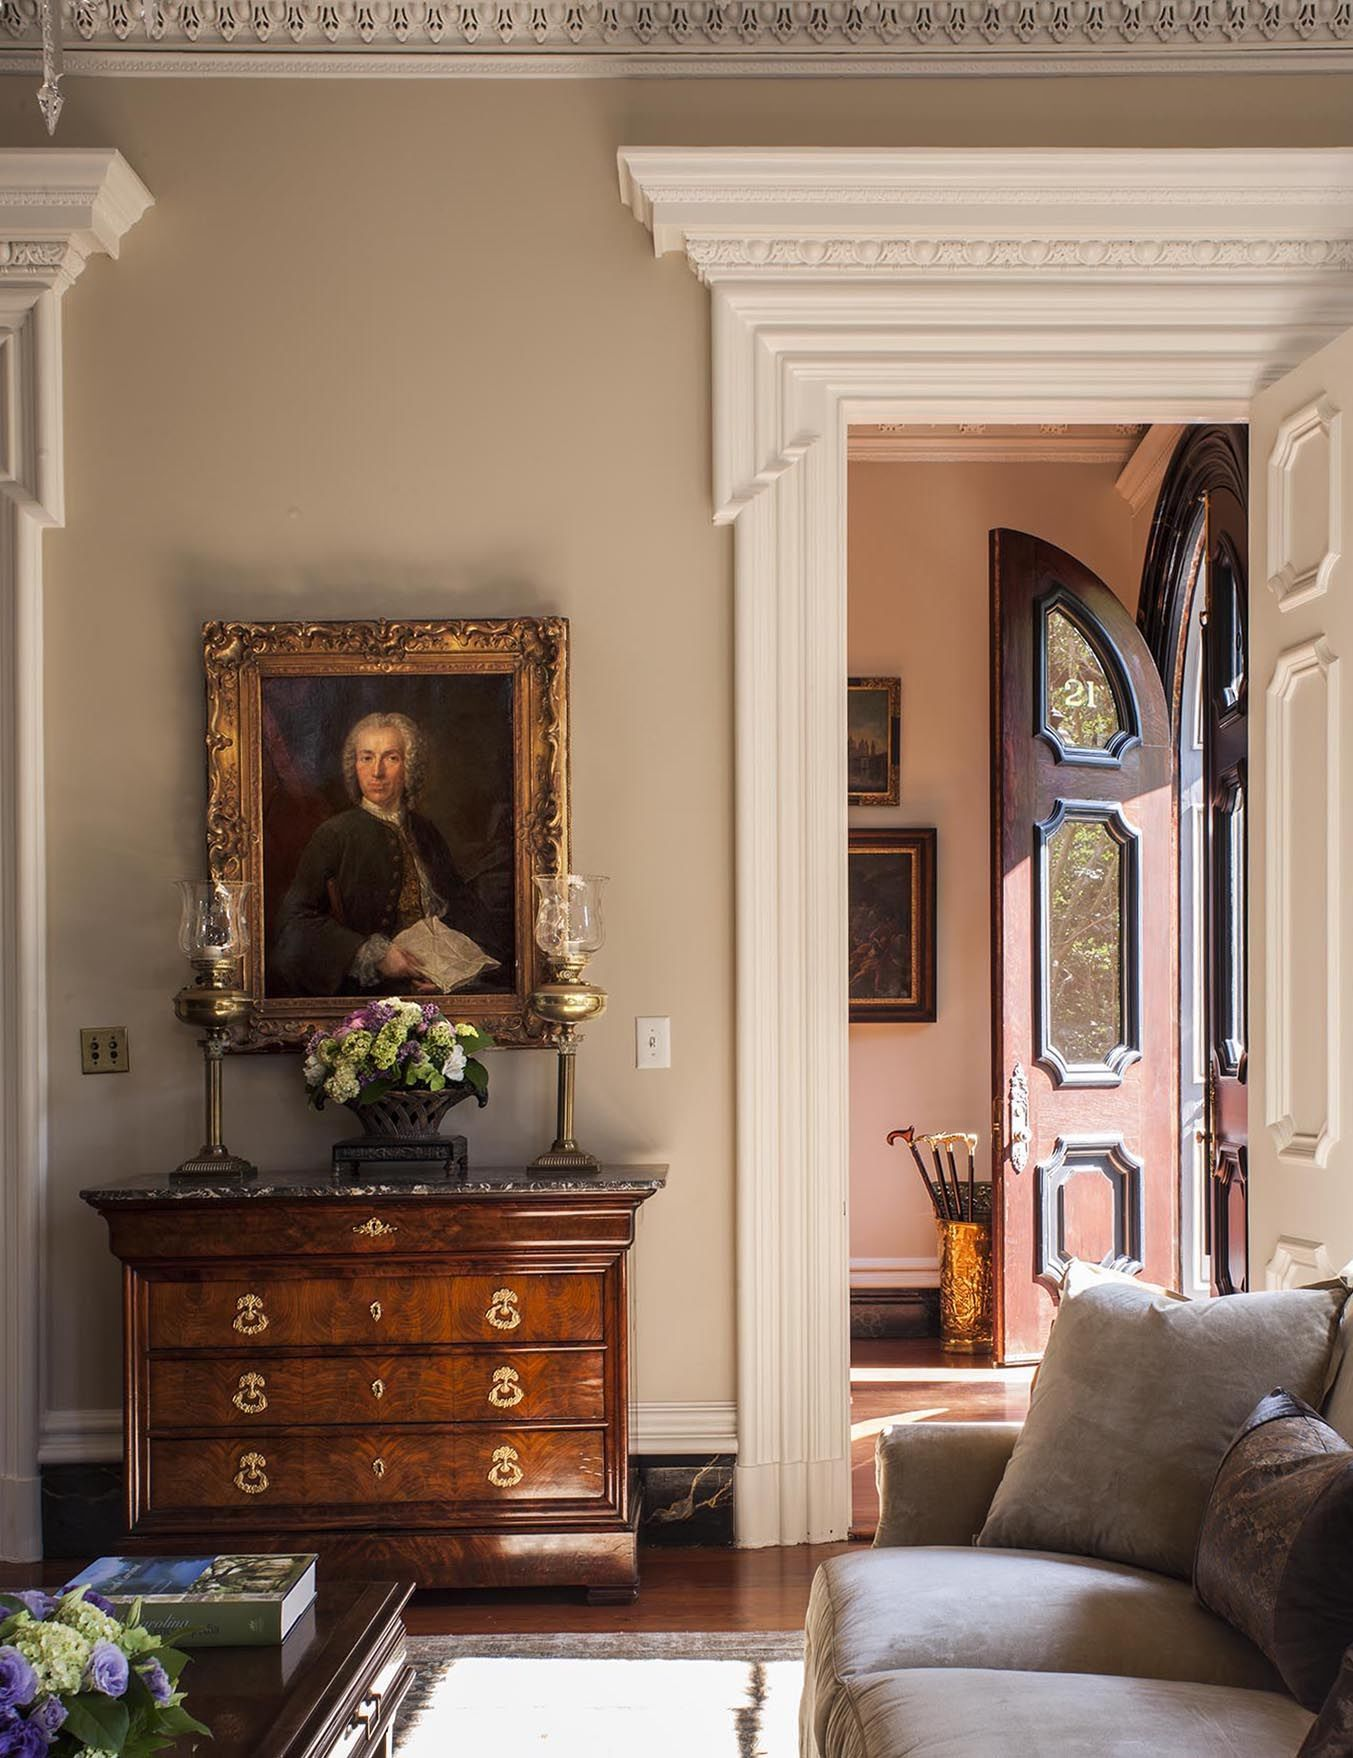 Traditional Interior Design By Ownby: Images By SLC Interiors. Love The Door In The Foyer